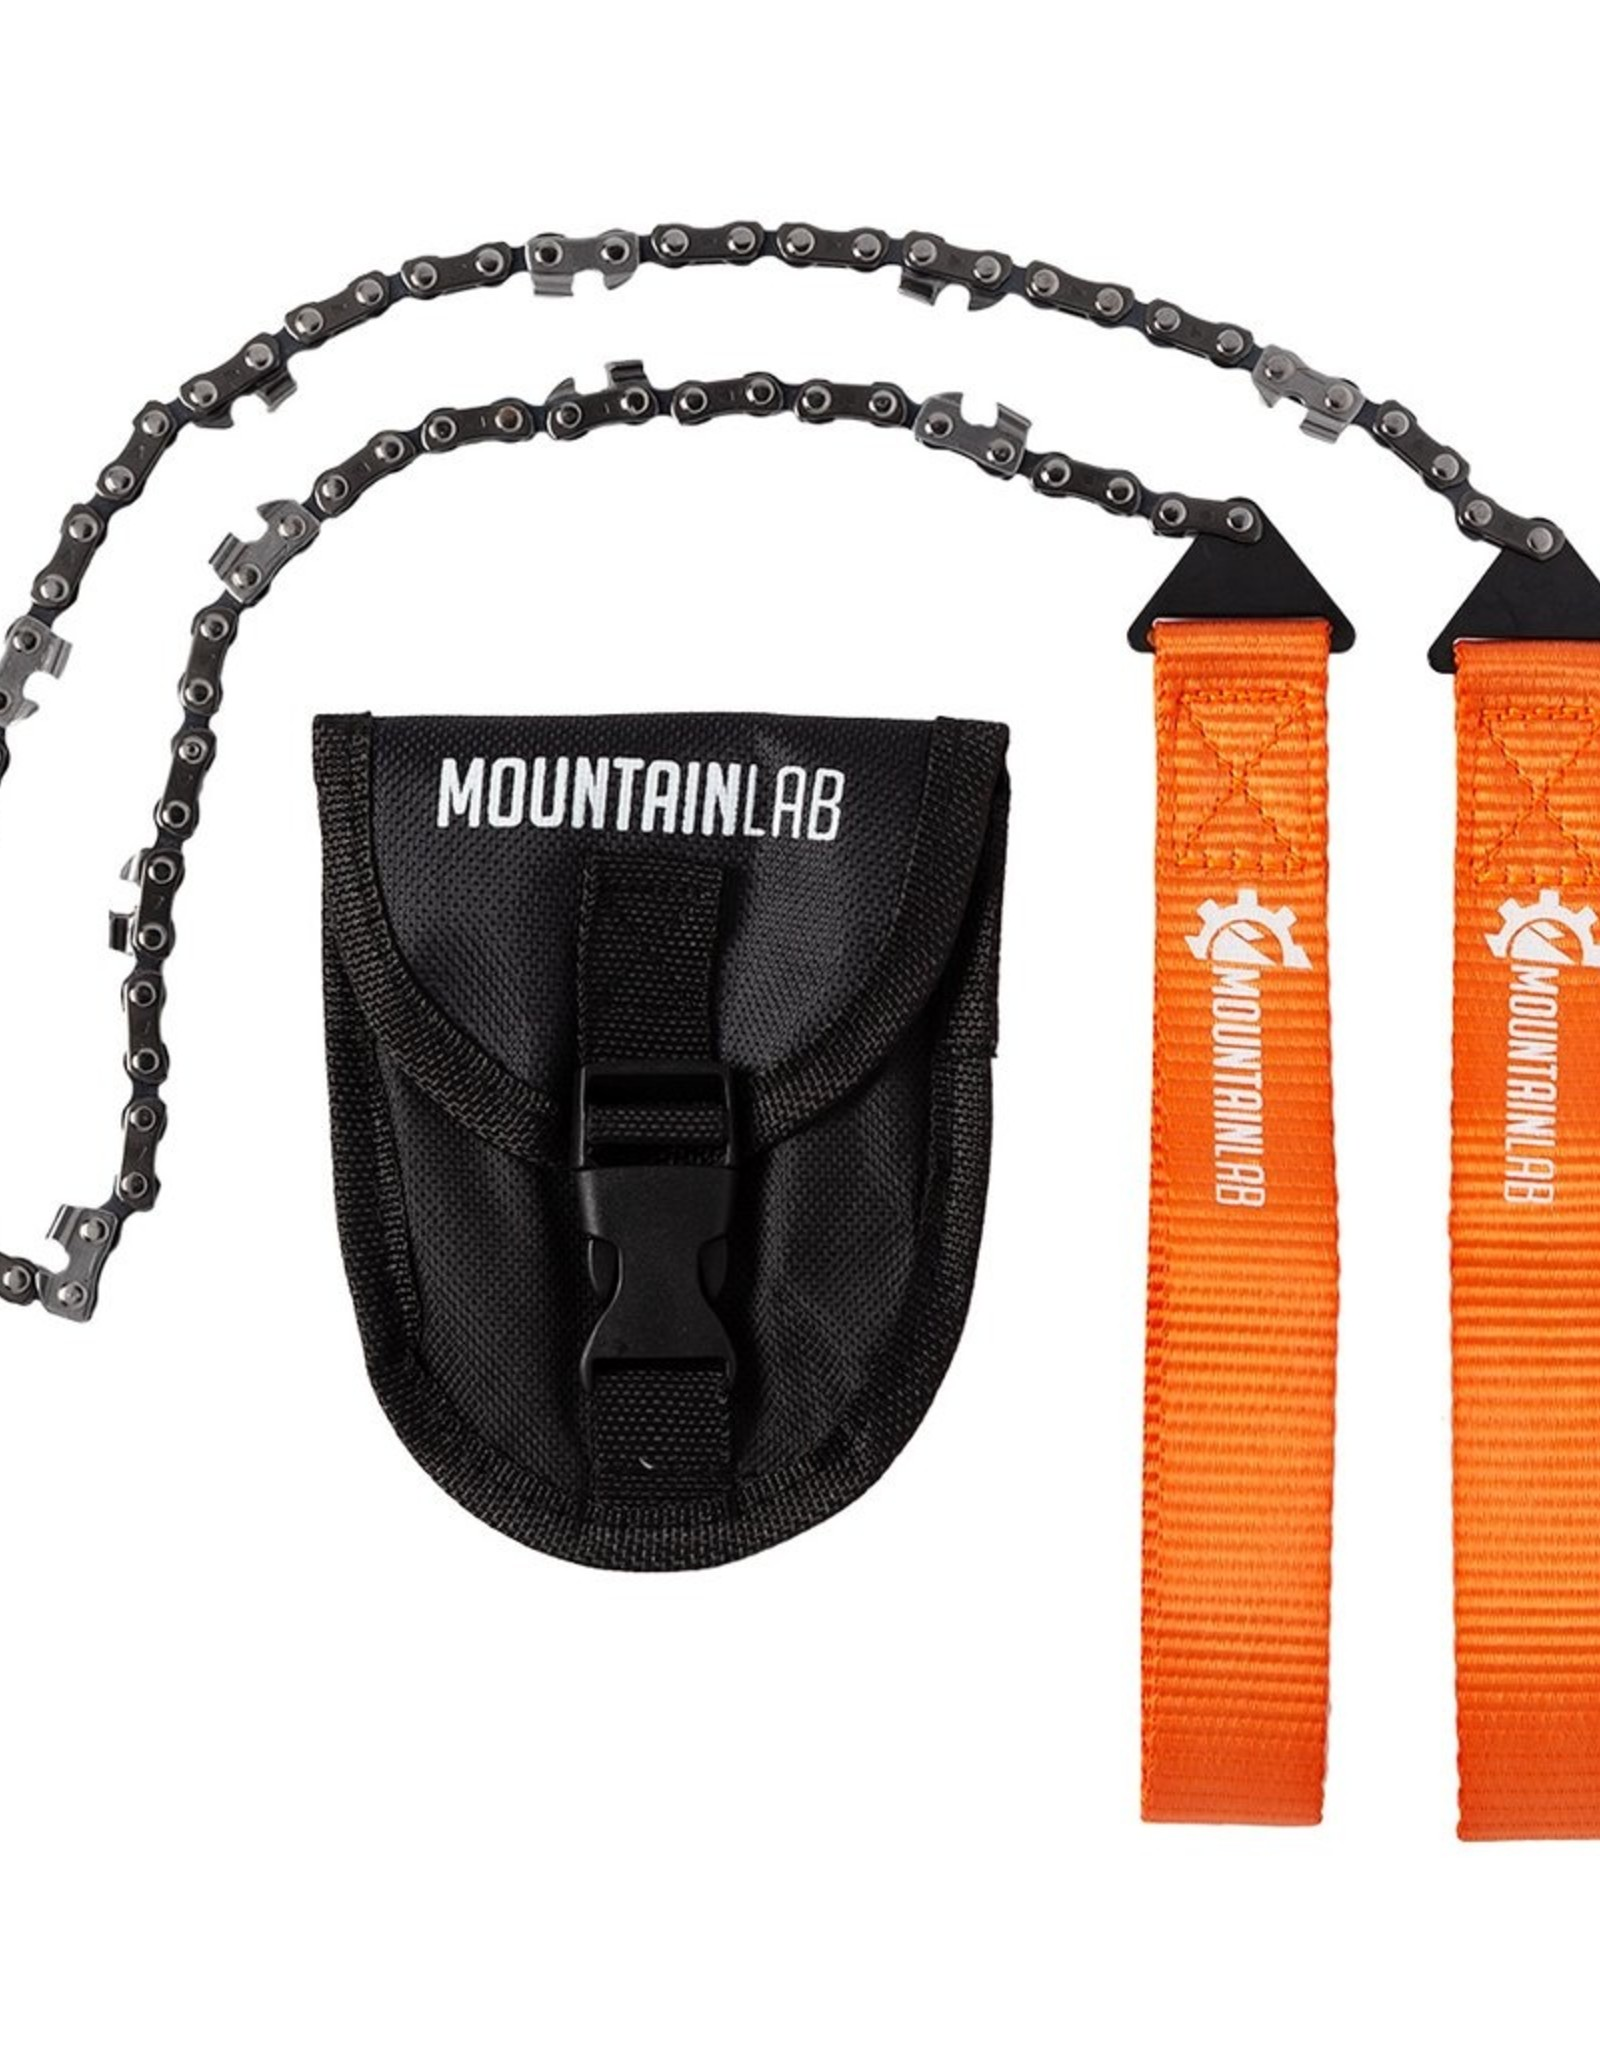 Mountain Lab Backcountry Chain Saw